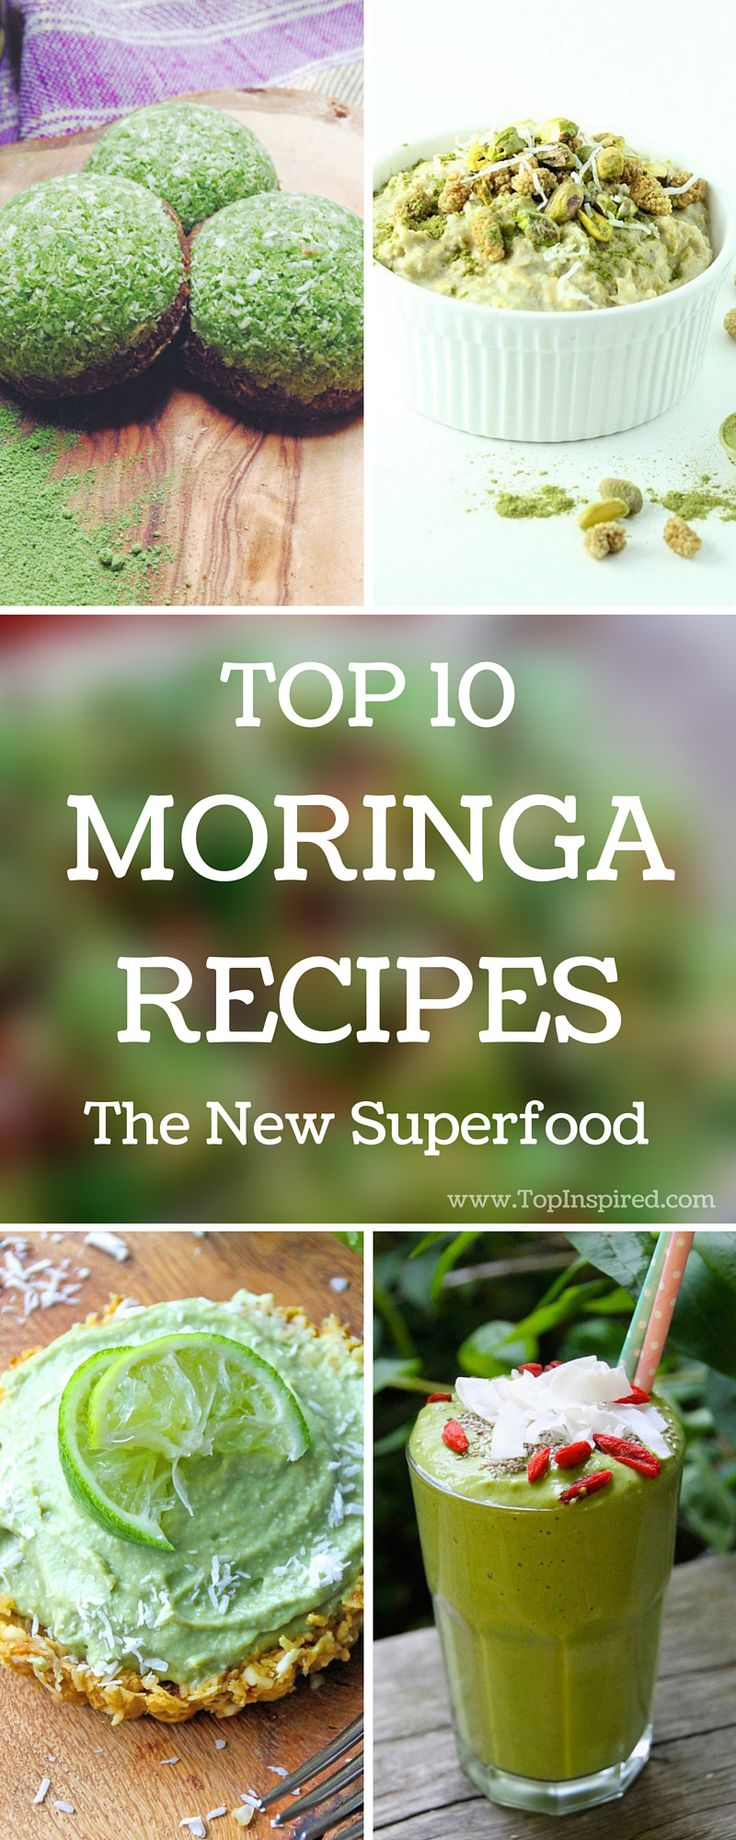 Packed with vitamins and nutrients, Moringa is regarded as the new superfood. The leaves are rich in vitamin A, B, and C, calcium, potassium, magnesium, iron, and protein.